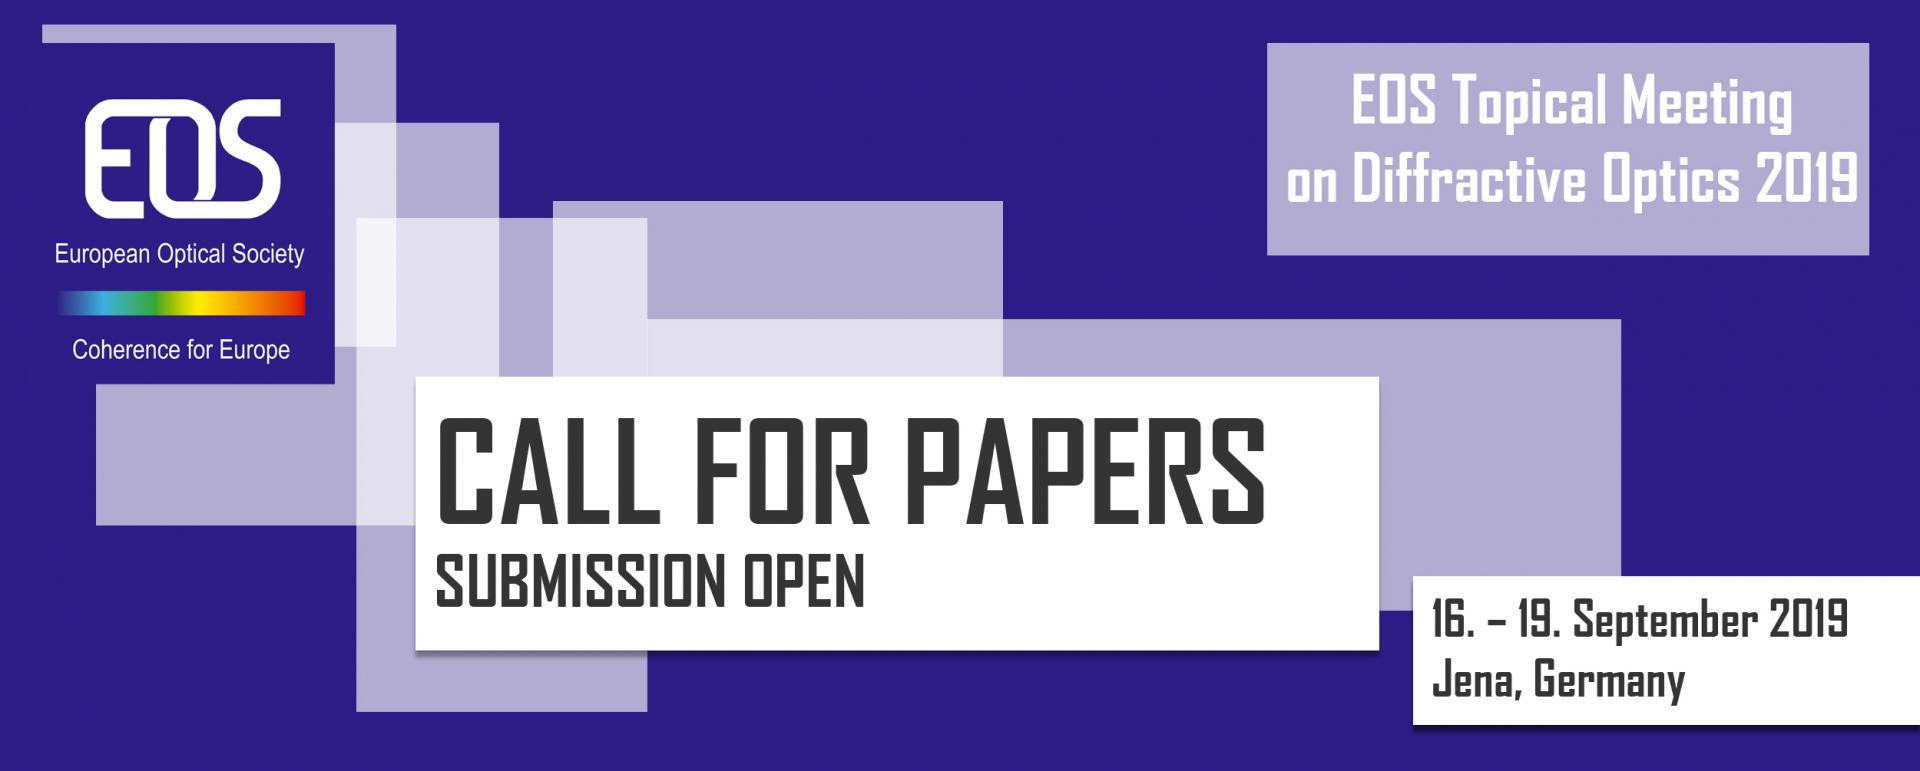 2019 03 12 anne jahn call for papers image